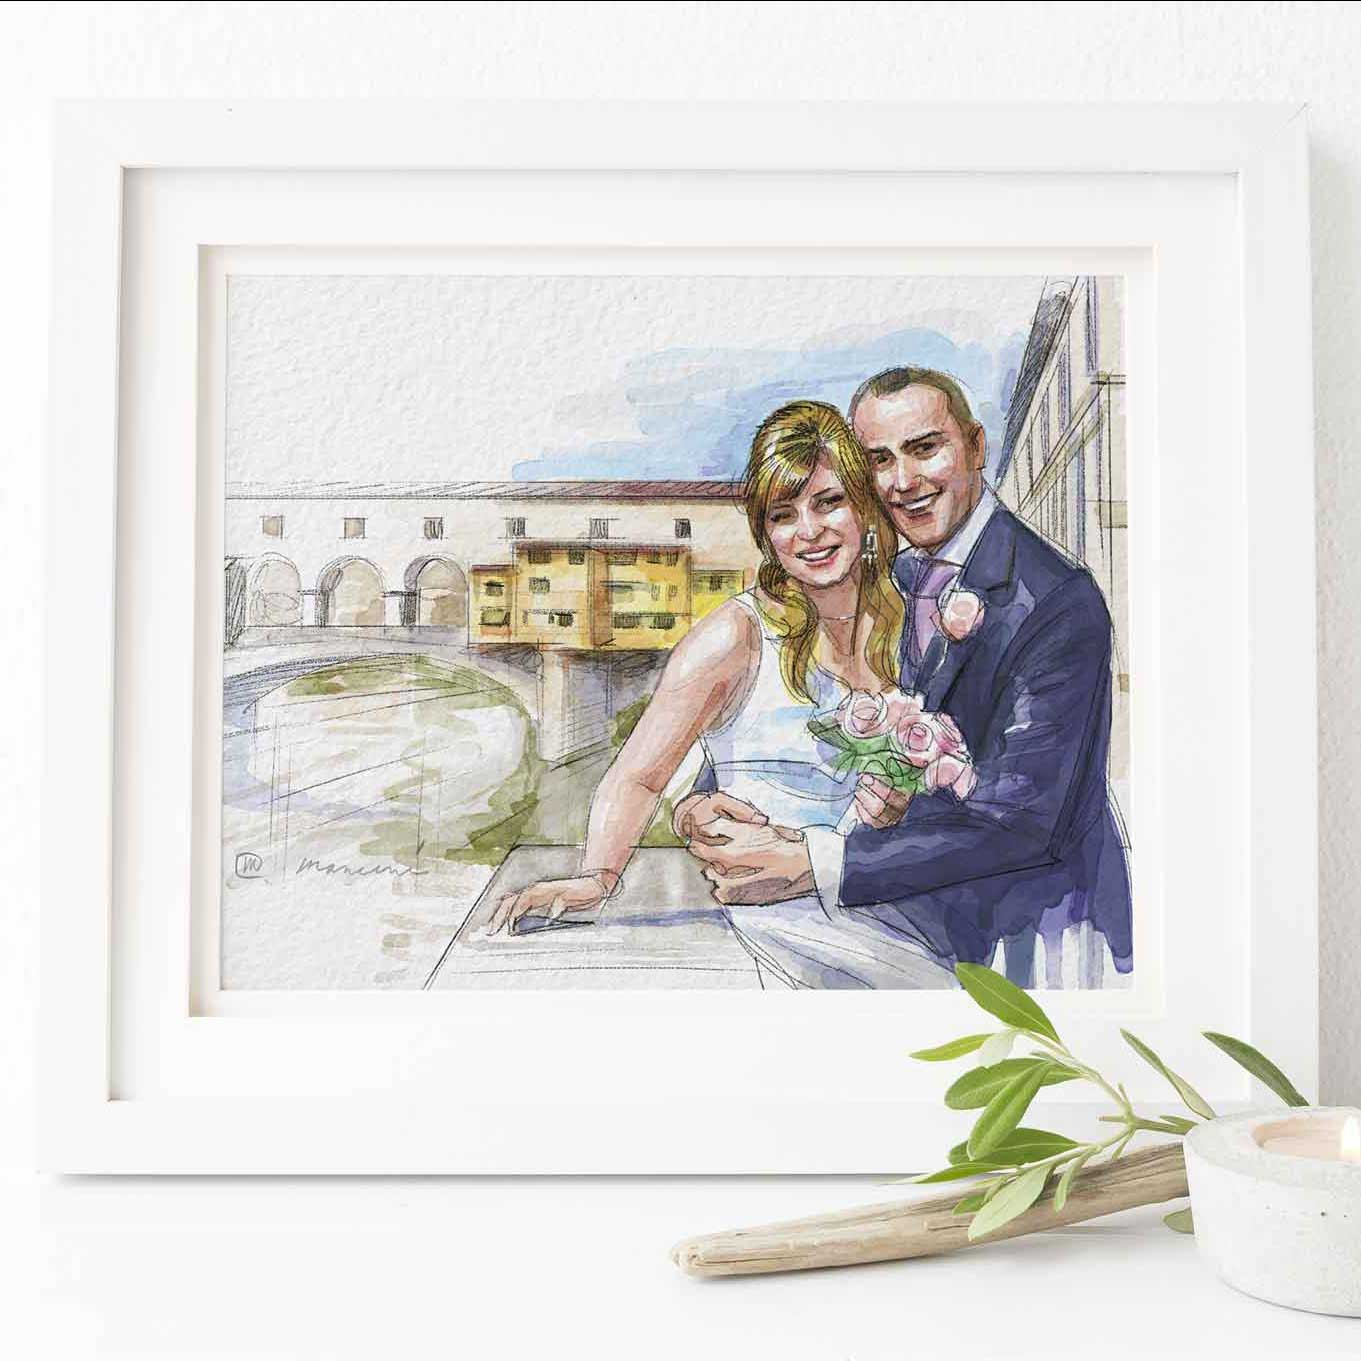 Ritratto-online-demo-framed-8